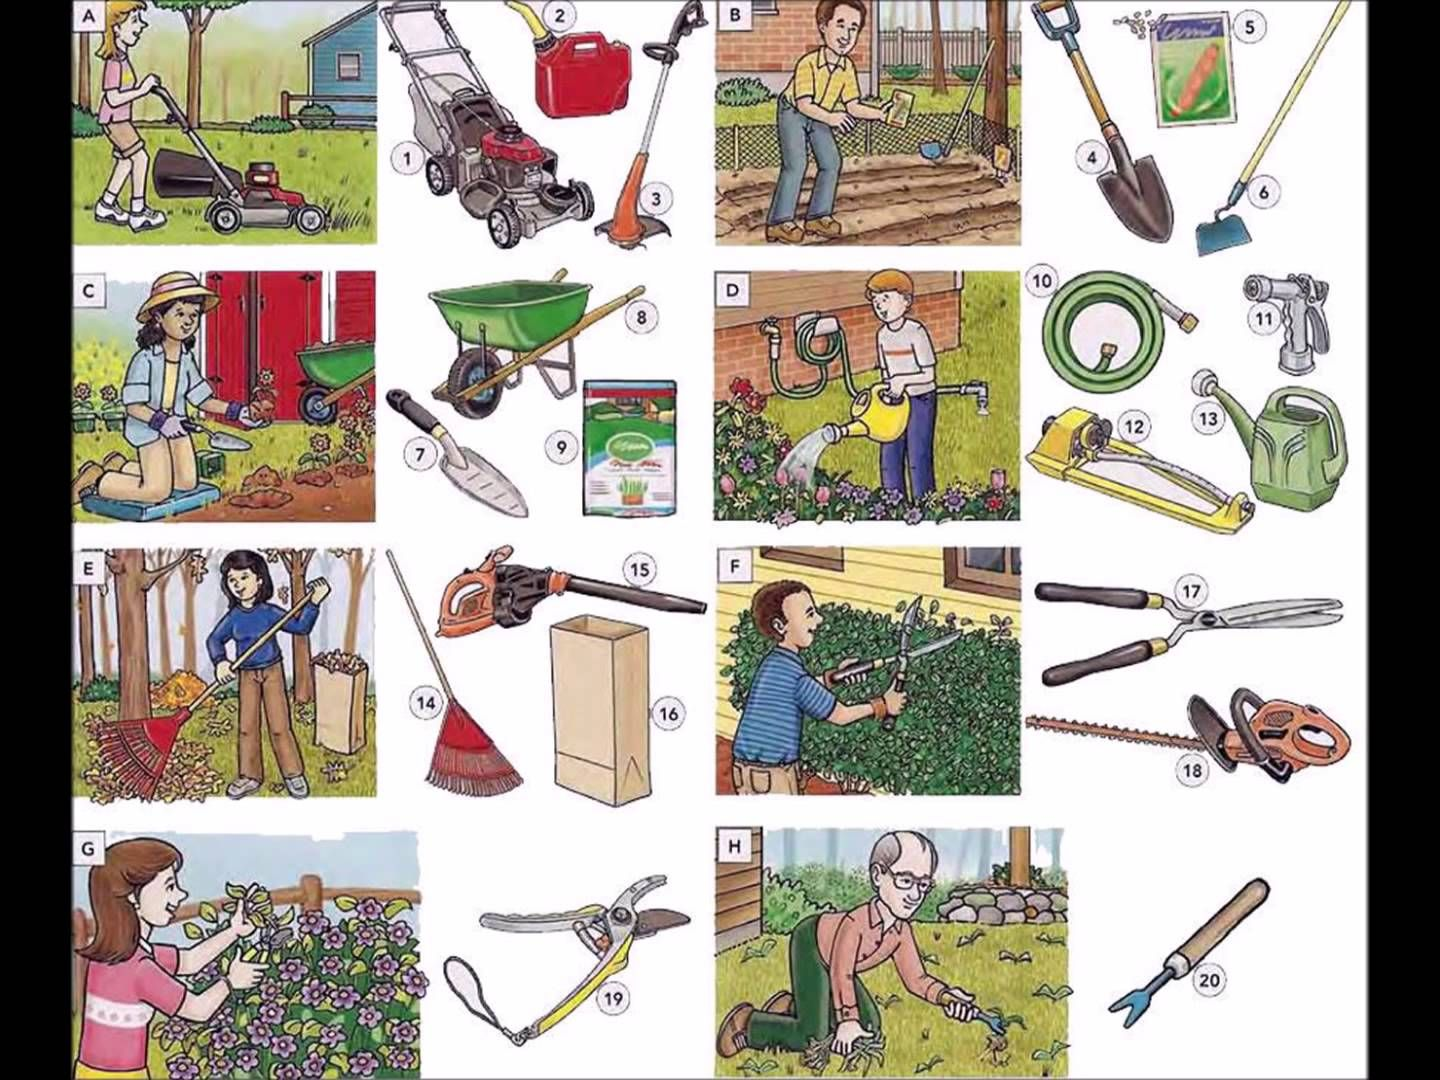 Garden tools garden actions and maintenance video english for Garden maintenance tools